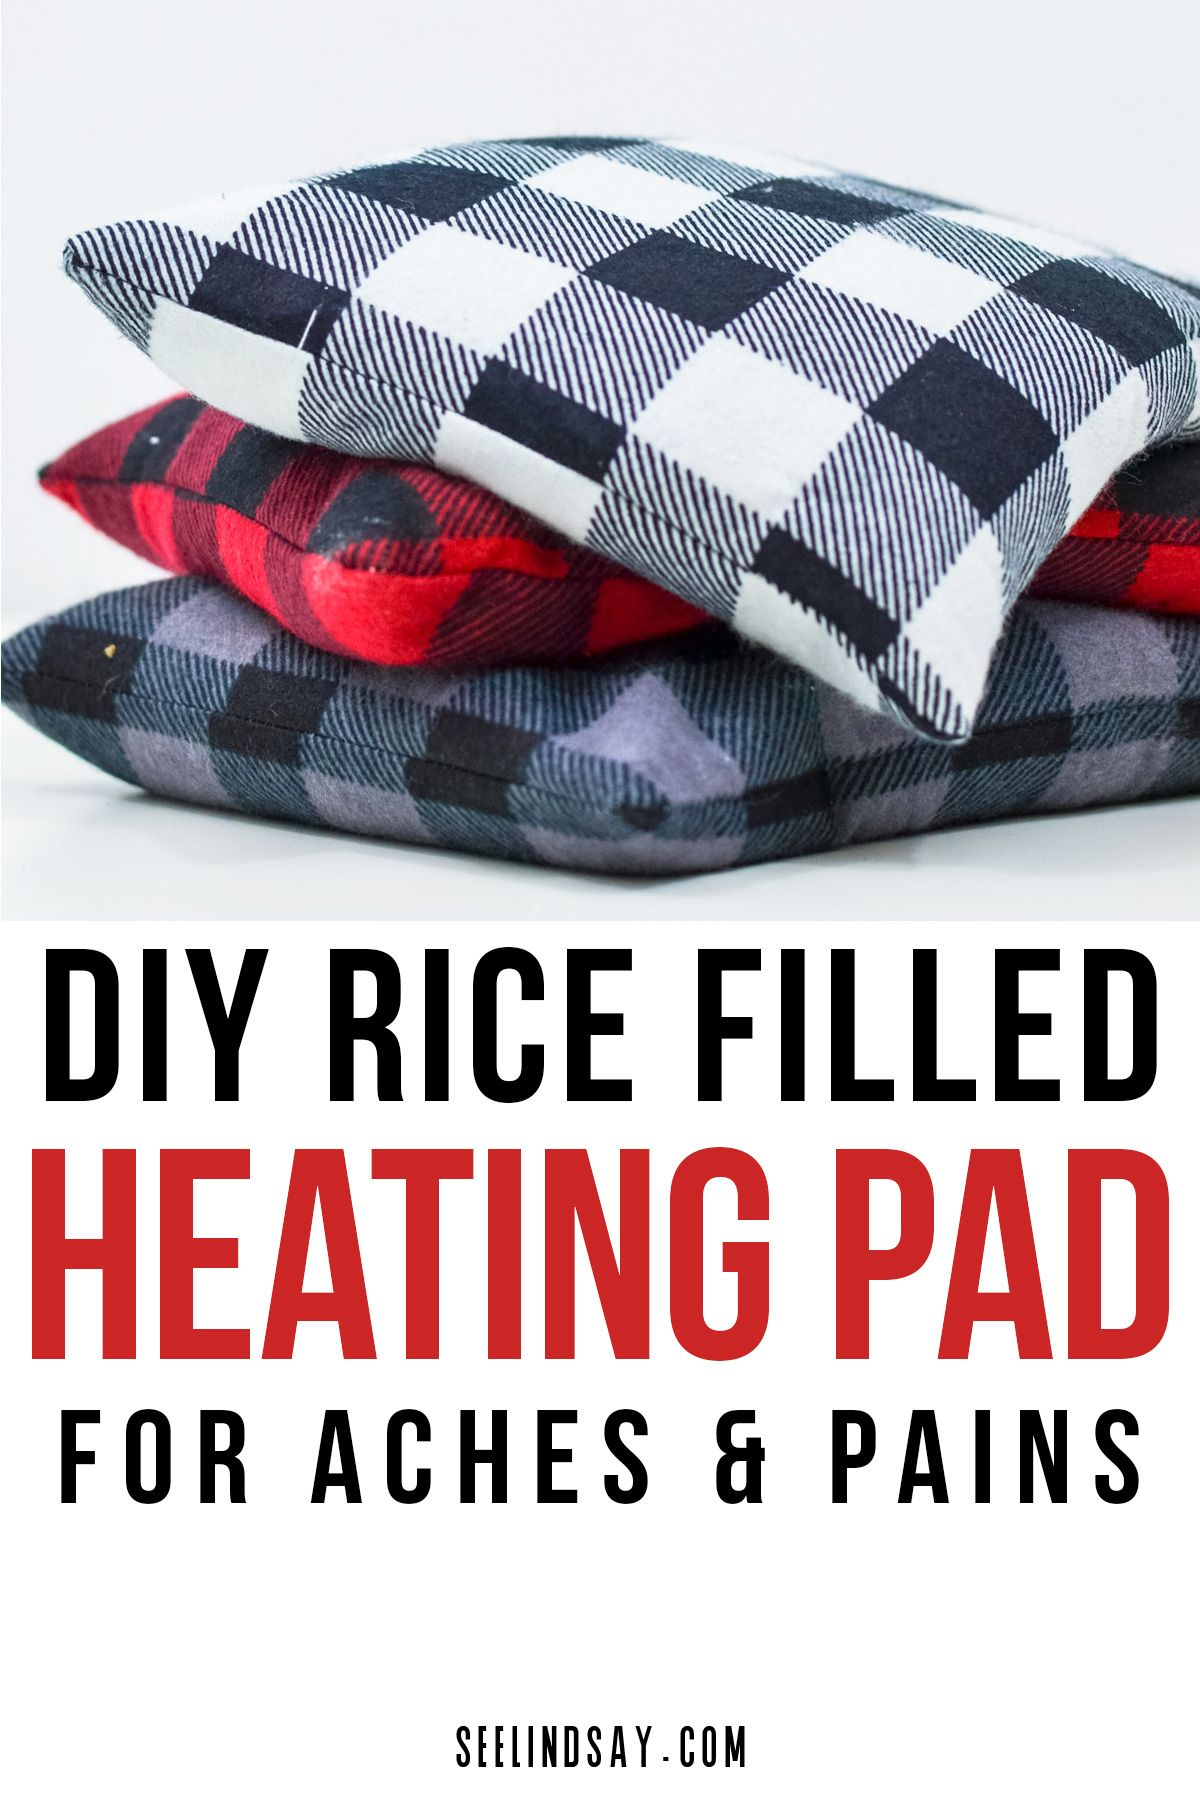 Make this rice-filled heating pad today. This natural heating pad helps solve your aches and pains from all your vigorous exercises. Making a homemade heating pad is easy and all you need is rice and some flannel fabric. Cut it on your Cricut Maker or cut it by hand. #cricutmade #cricutmaker #heatingpad #homemadeheatingpad #diyheatingpad #riceheatingpad